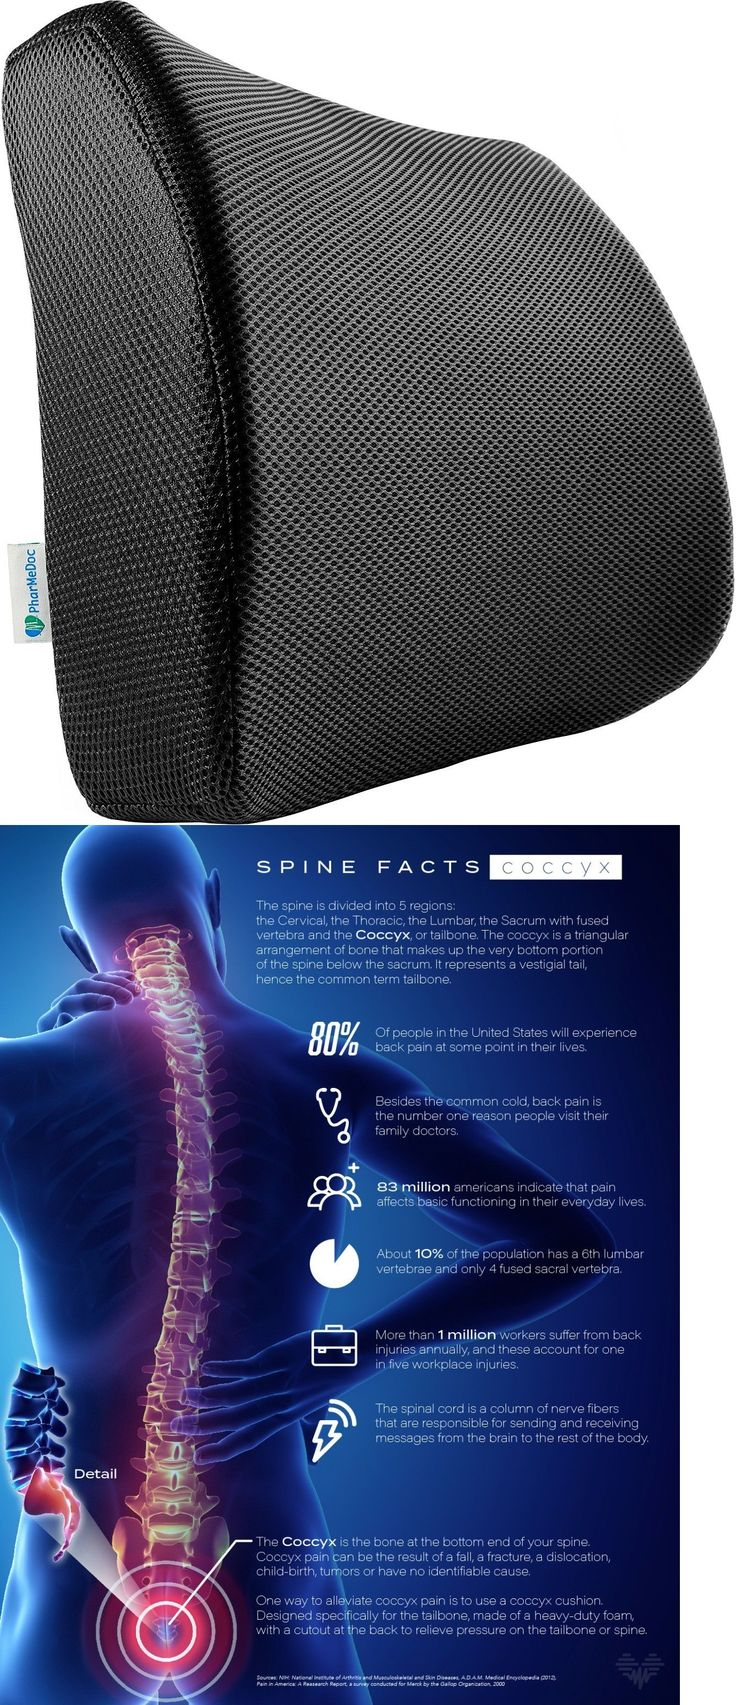 Seat and Posture Cushions: Pharmedoc Lumbar Support Seat Cushion - Lower Back Pain Office Posture Corrector -> BUY IT NOW ONLY: $31.98 on eBay!